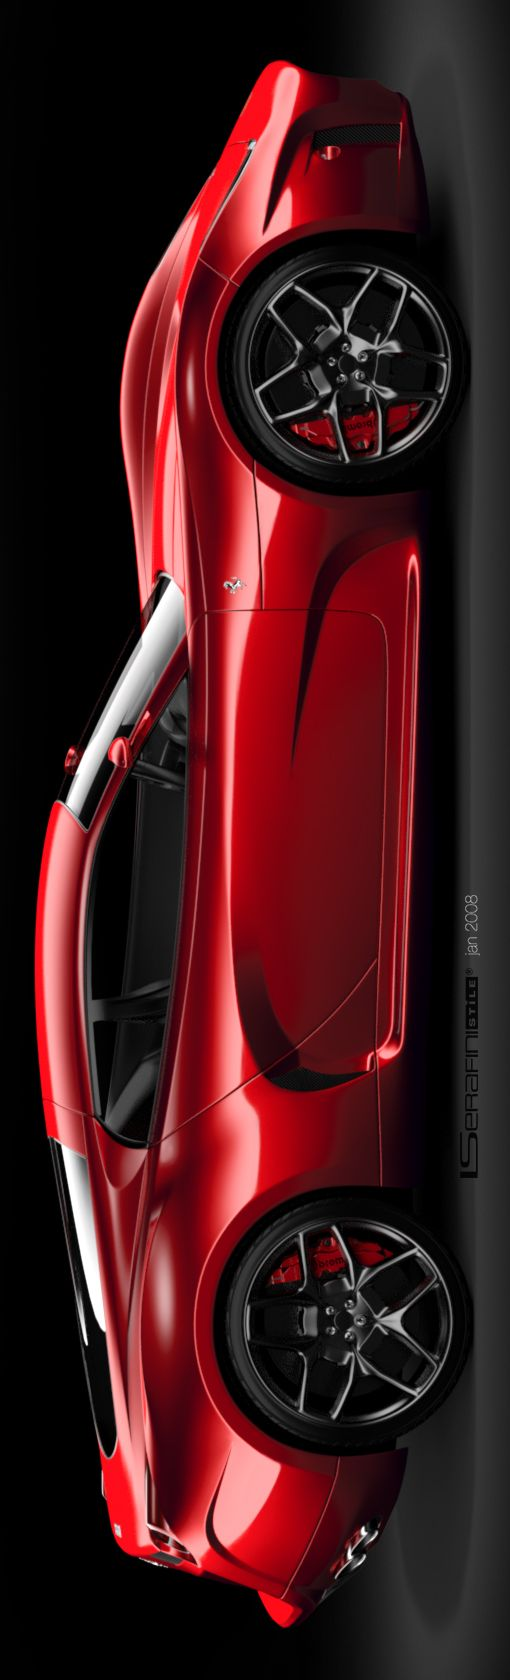 Cool Stuff We Like Here @ CoolPile.com ------- << Original Comment >> ------- Ferrari concept I absolutely love Ferrari's , have always wanted one